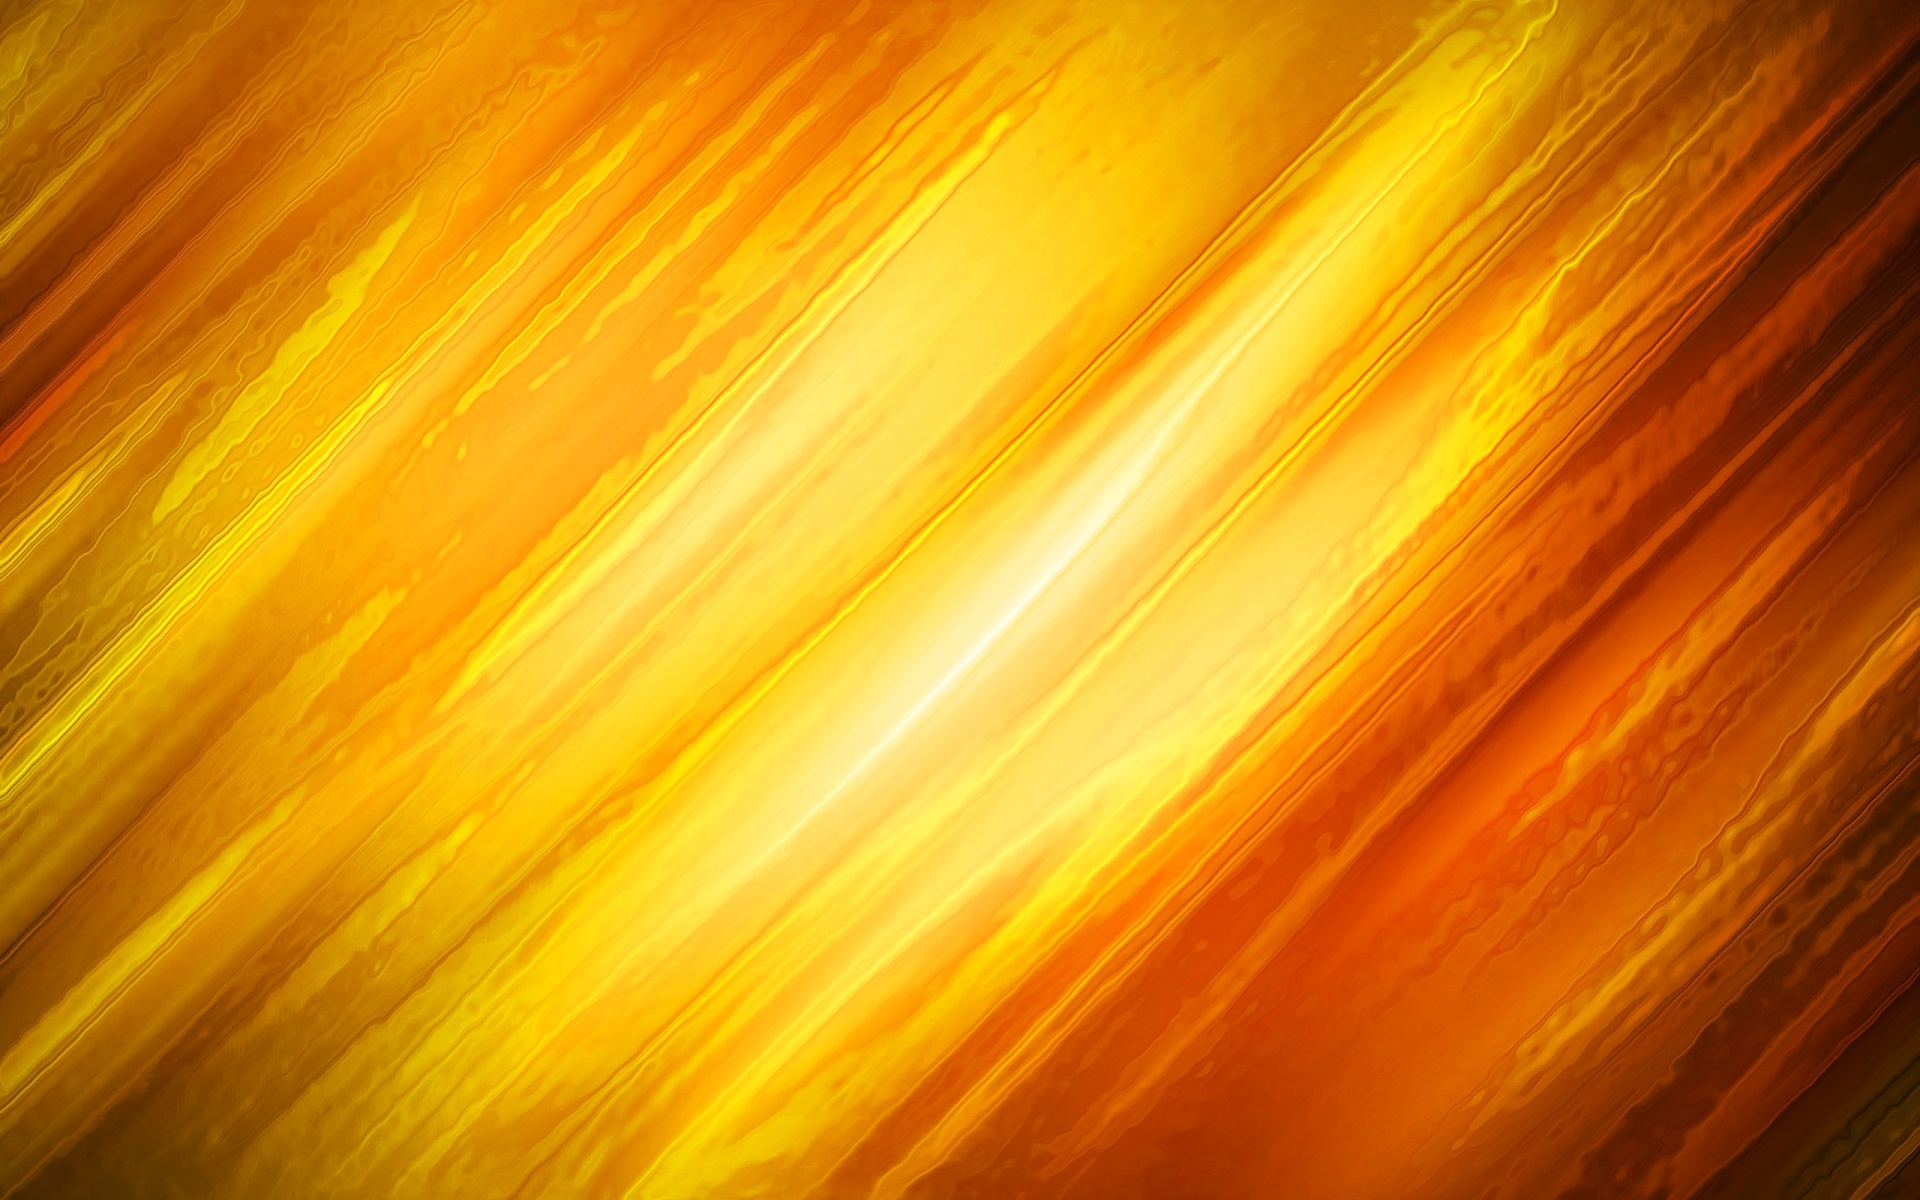 abstract-yellow-and-orange-background-wallpapers_35310_1920x1200.jpg ...